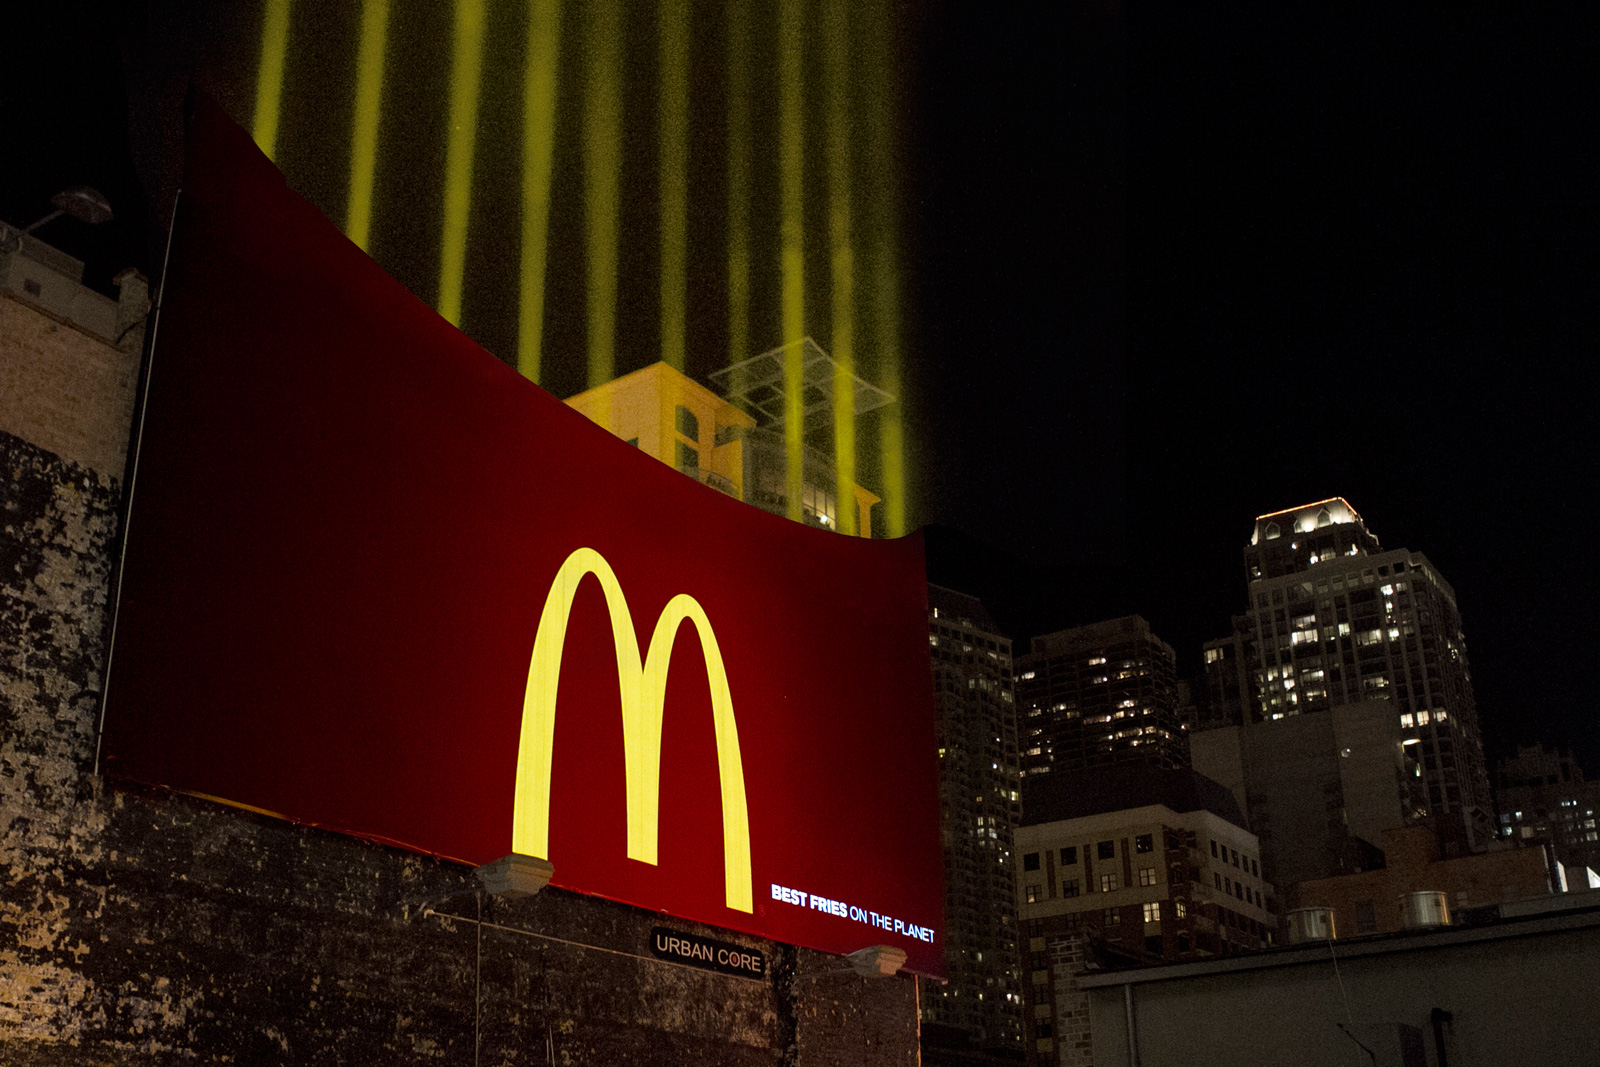 McDonalds Fry Light